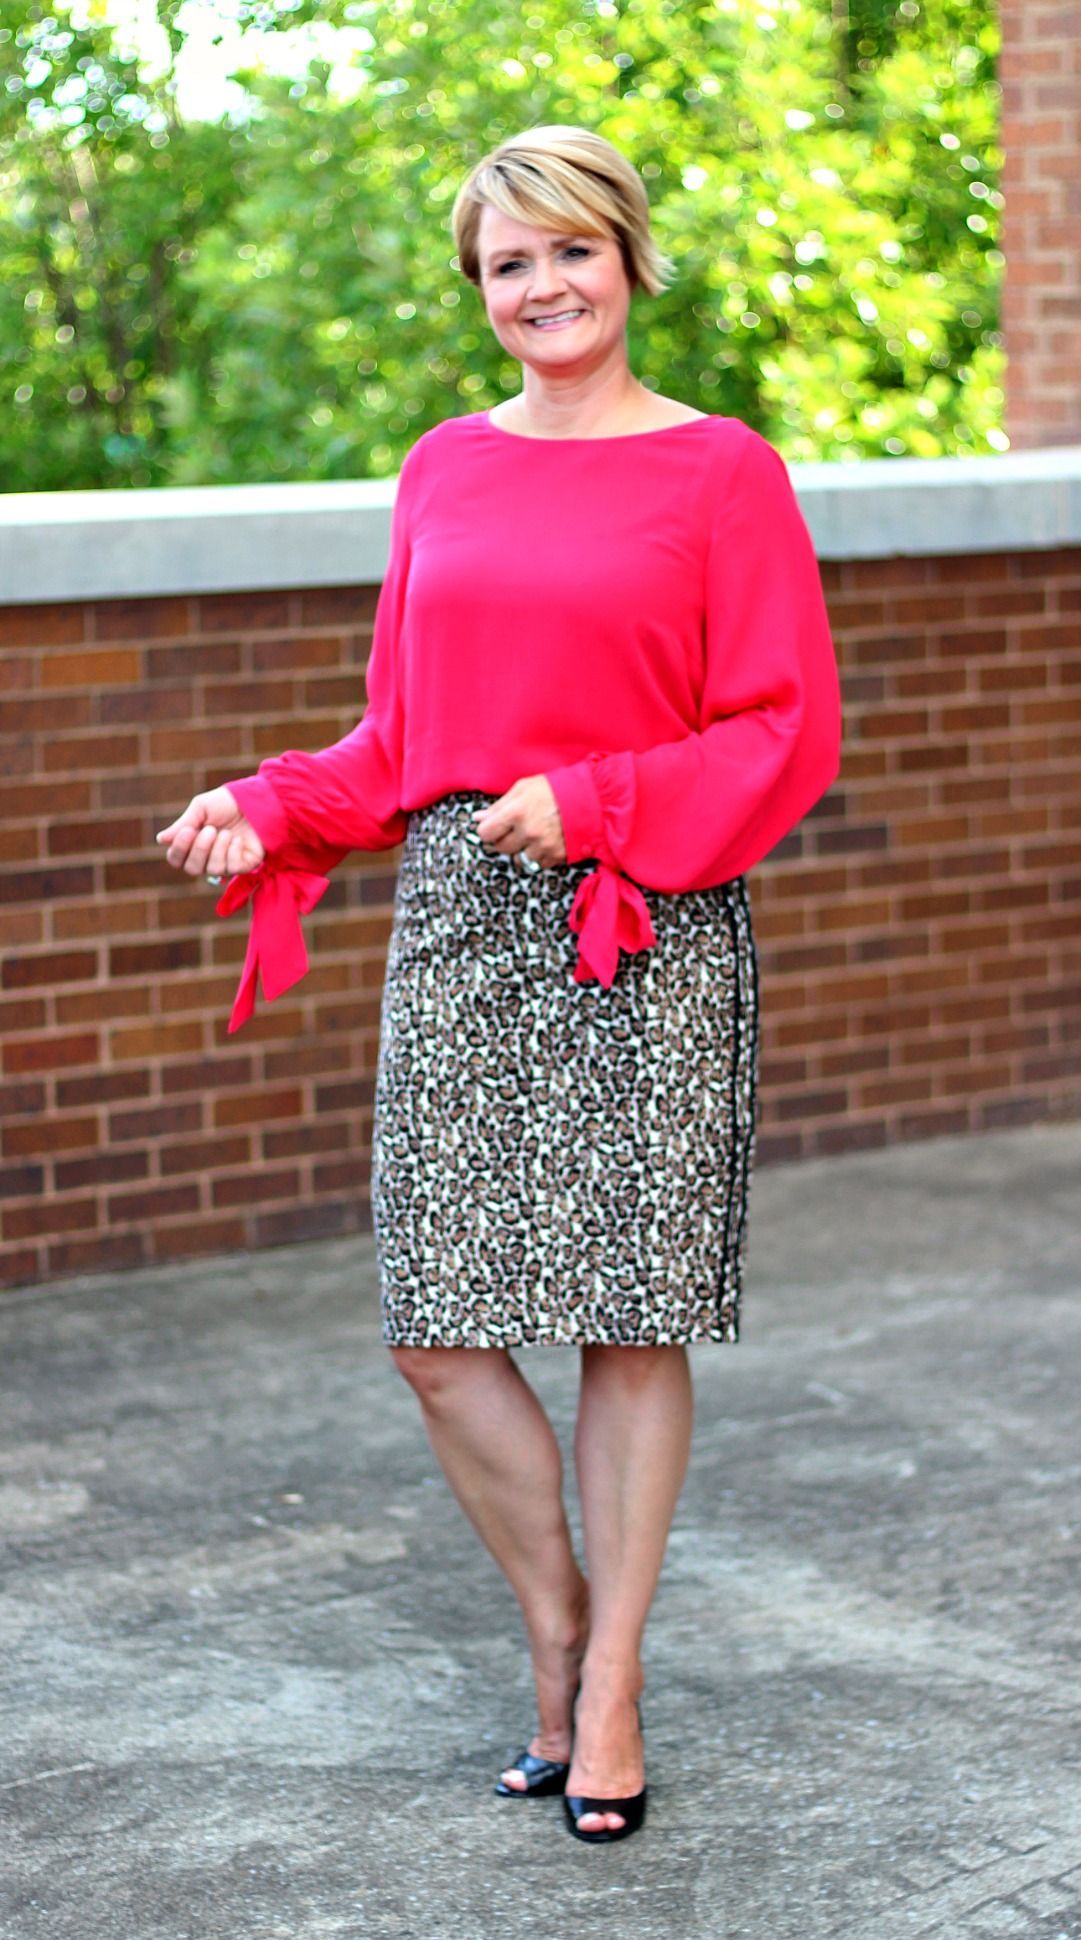 Image result for Leopard Print outfit with bright colors